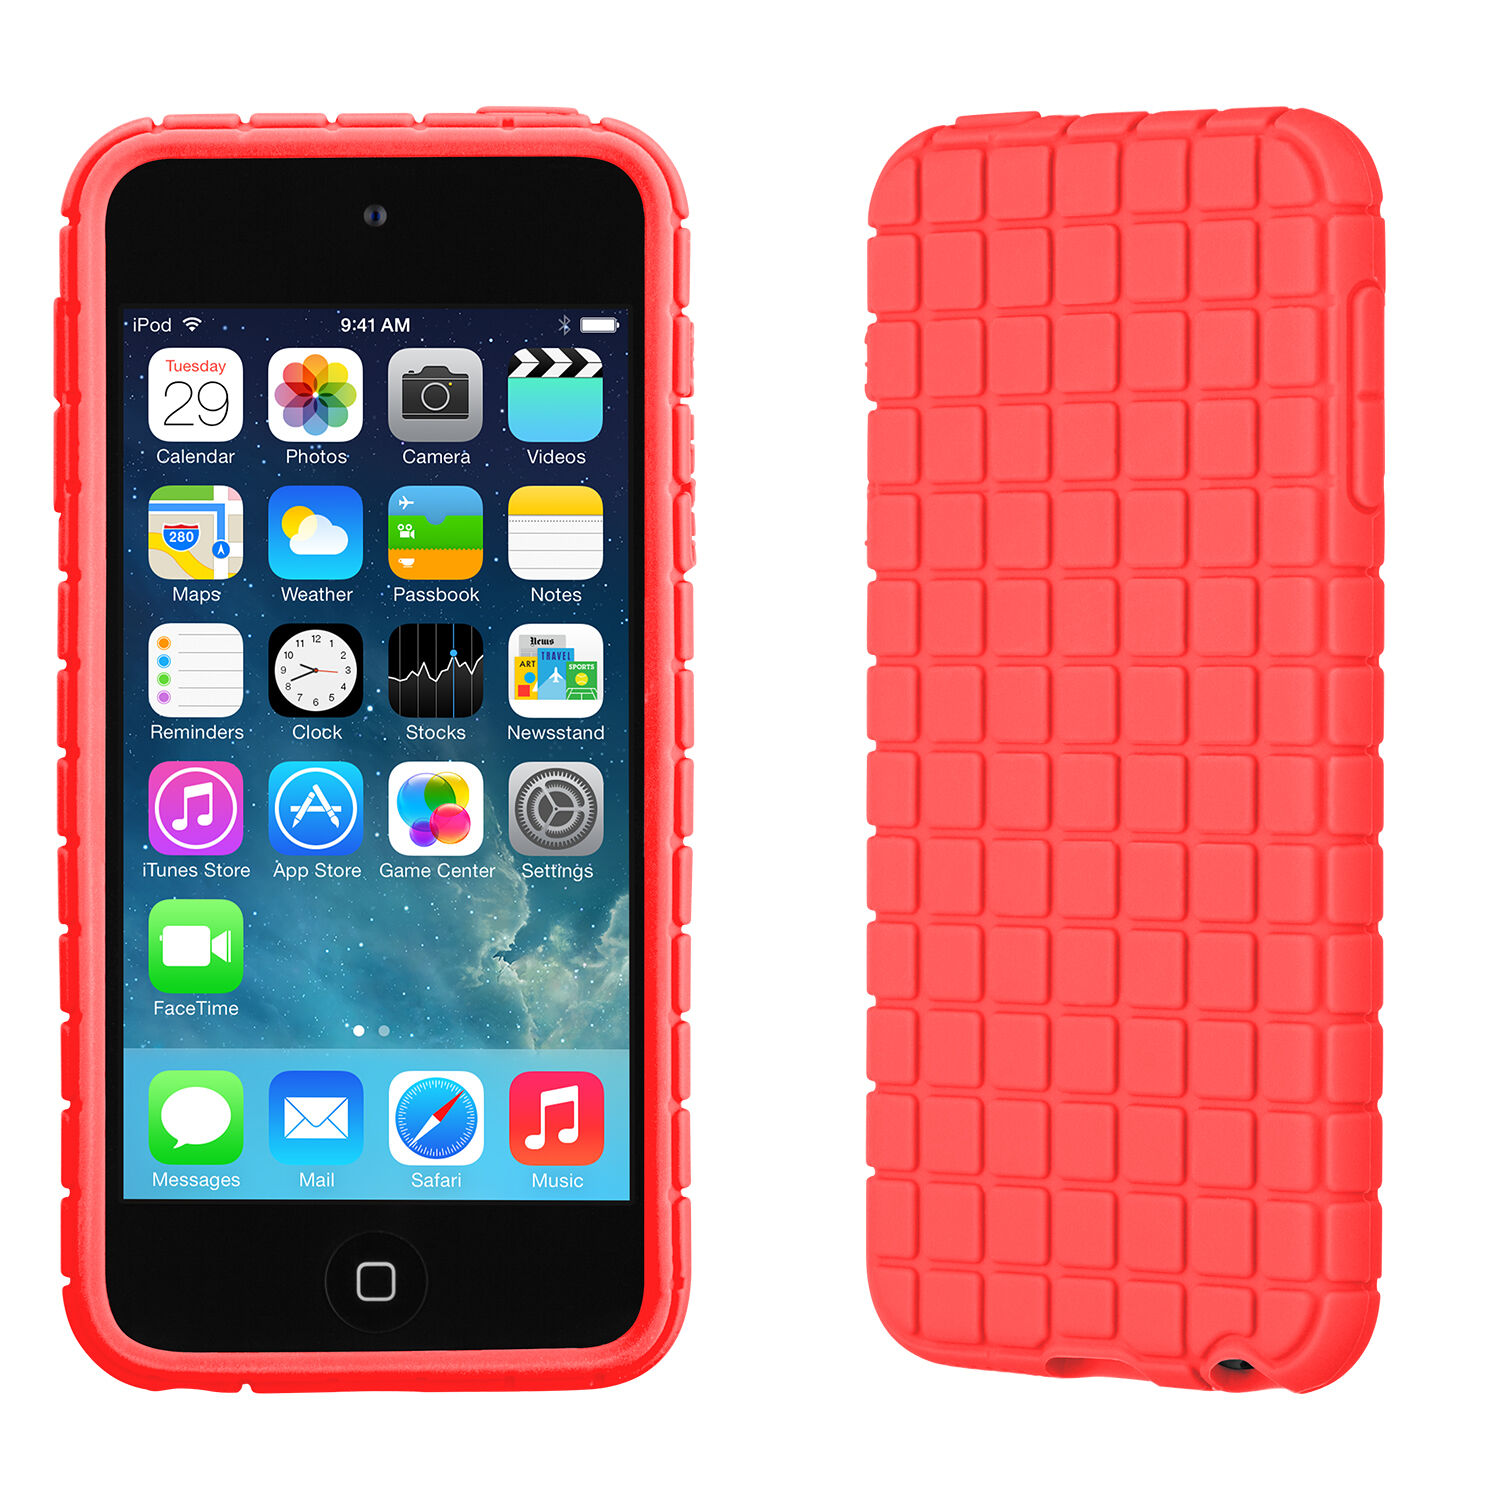 Pixelskin Ipod Touch 5g No Camera Cases